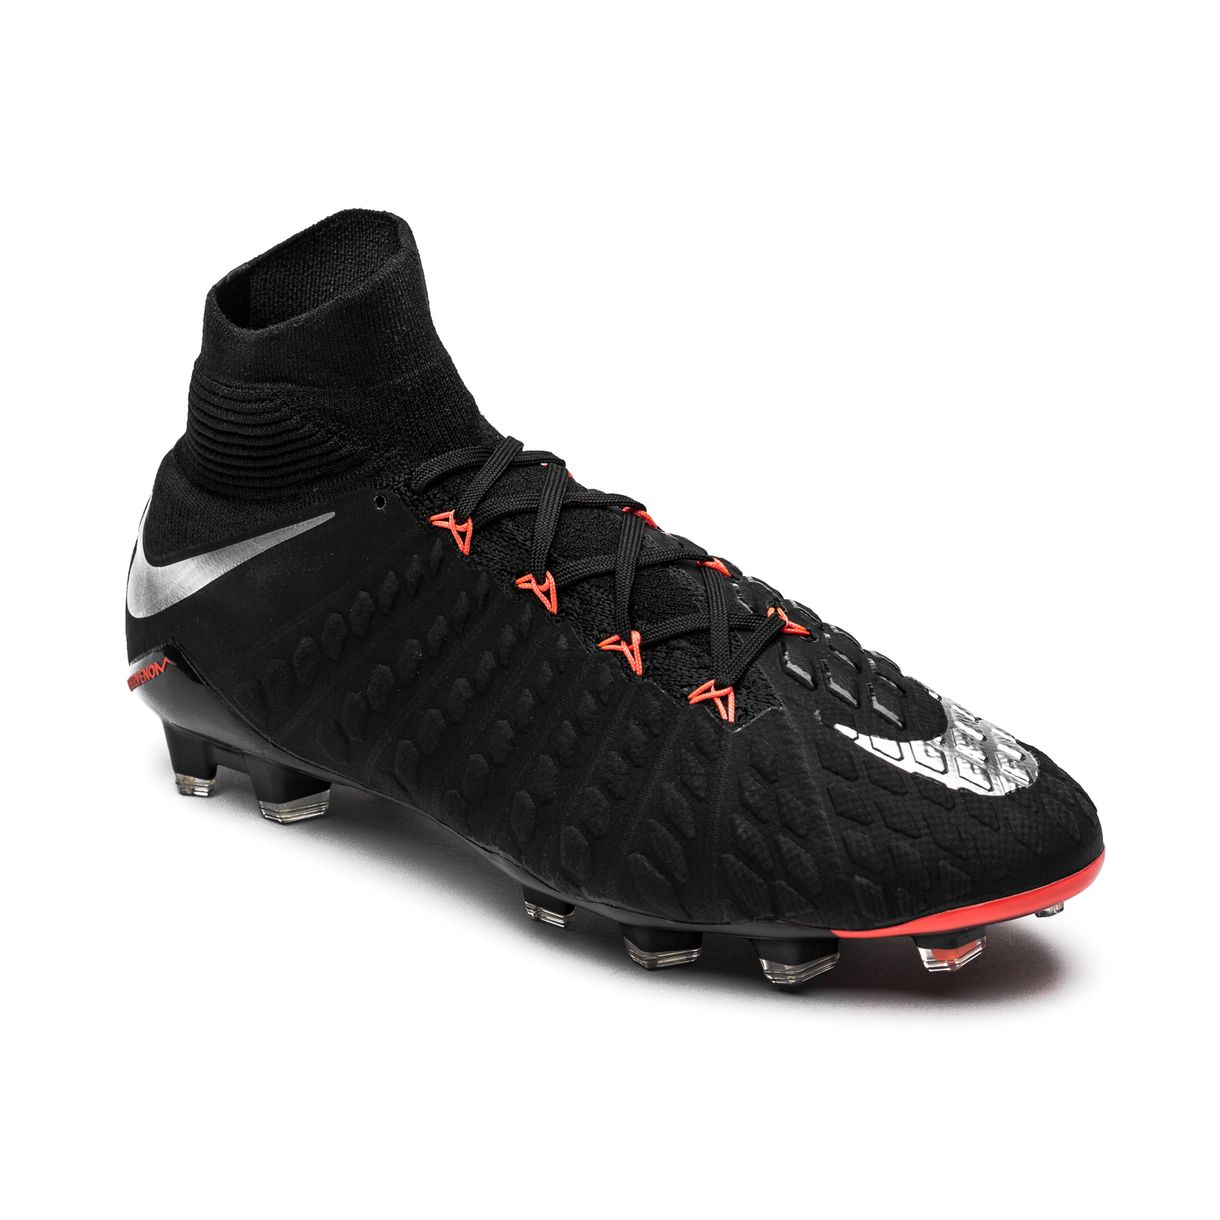 ee0b5a6ba53a ... Click to enlarge image  nike hypervenom phantom 3 df fg black strike night black metallic silver anthracite d.jpg  ...